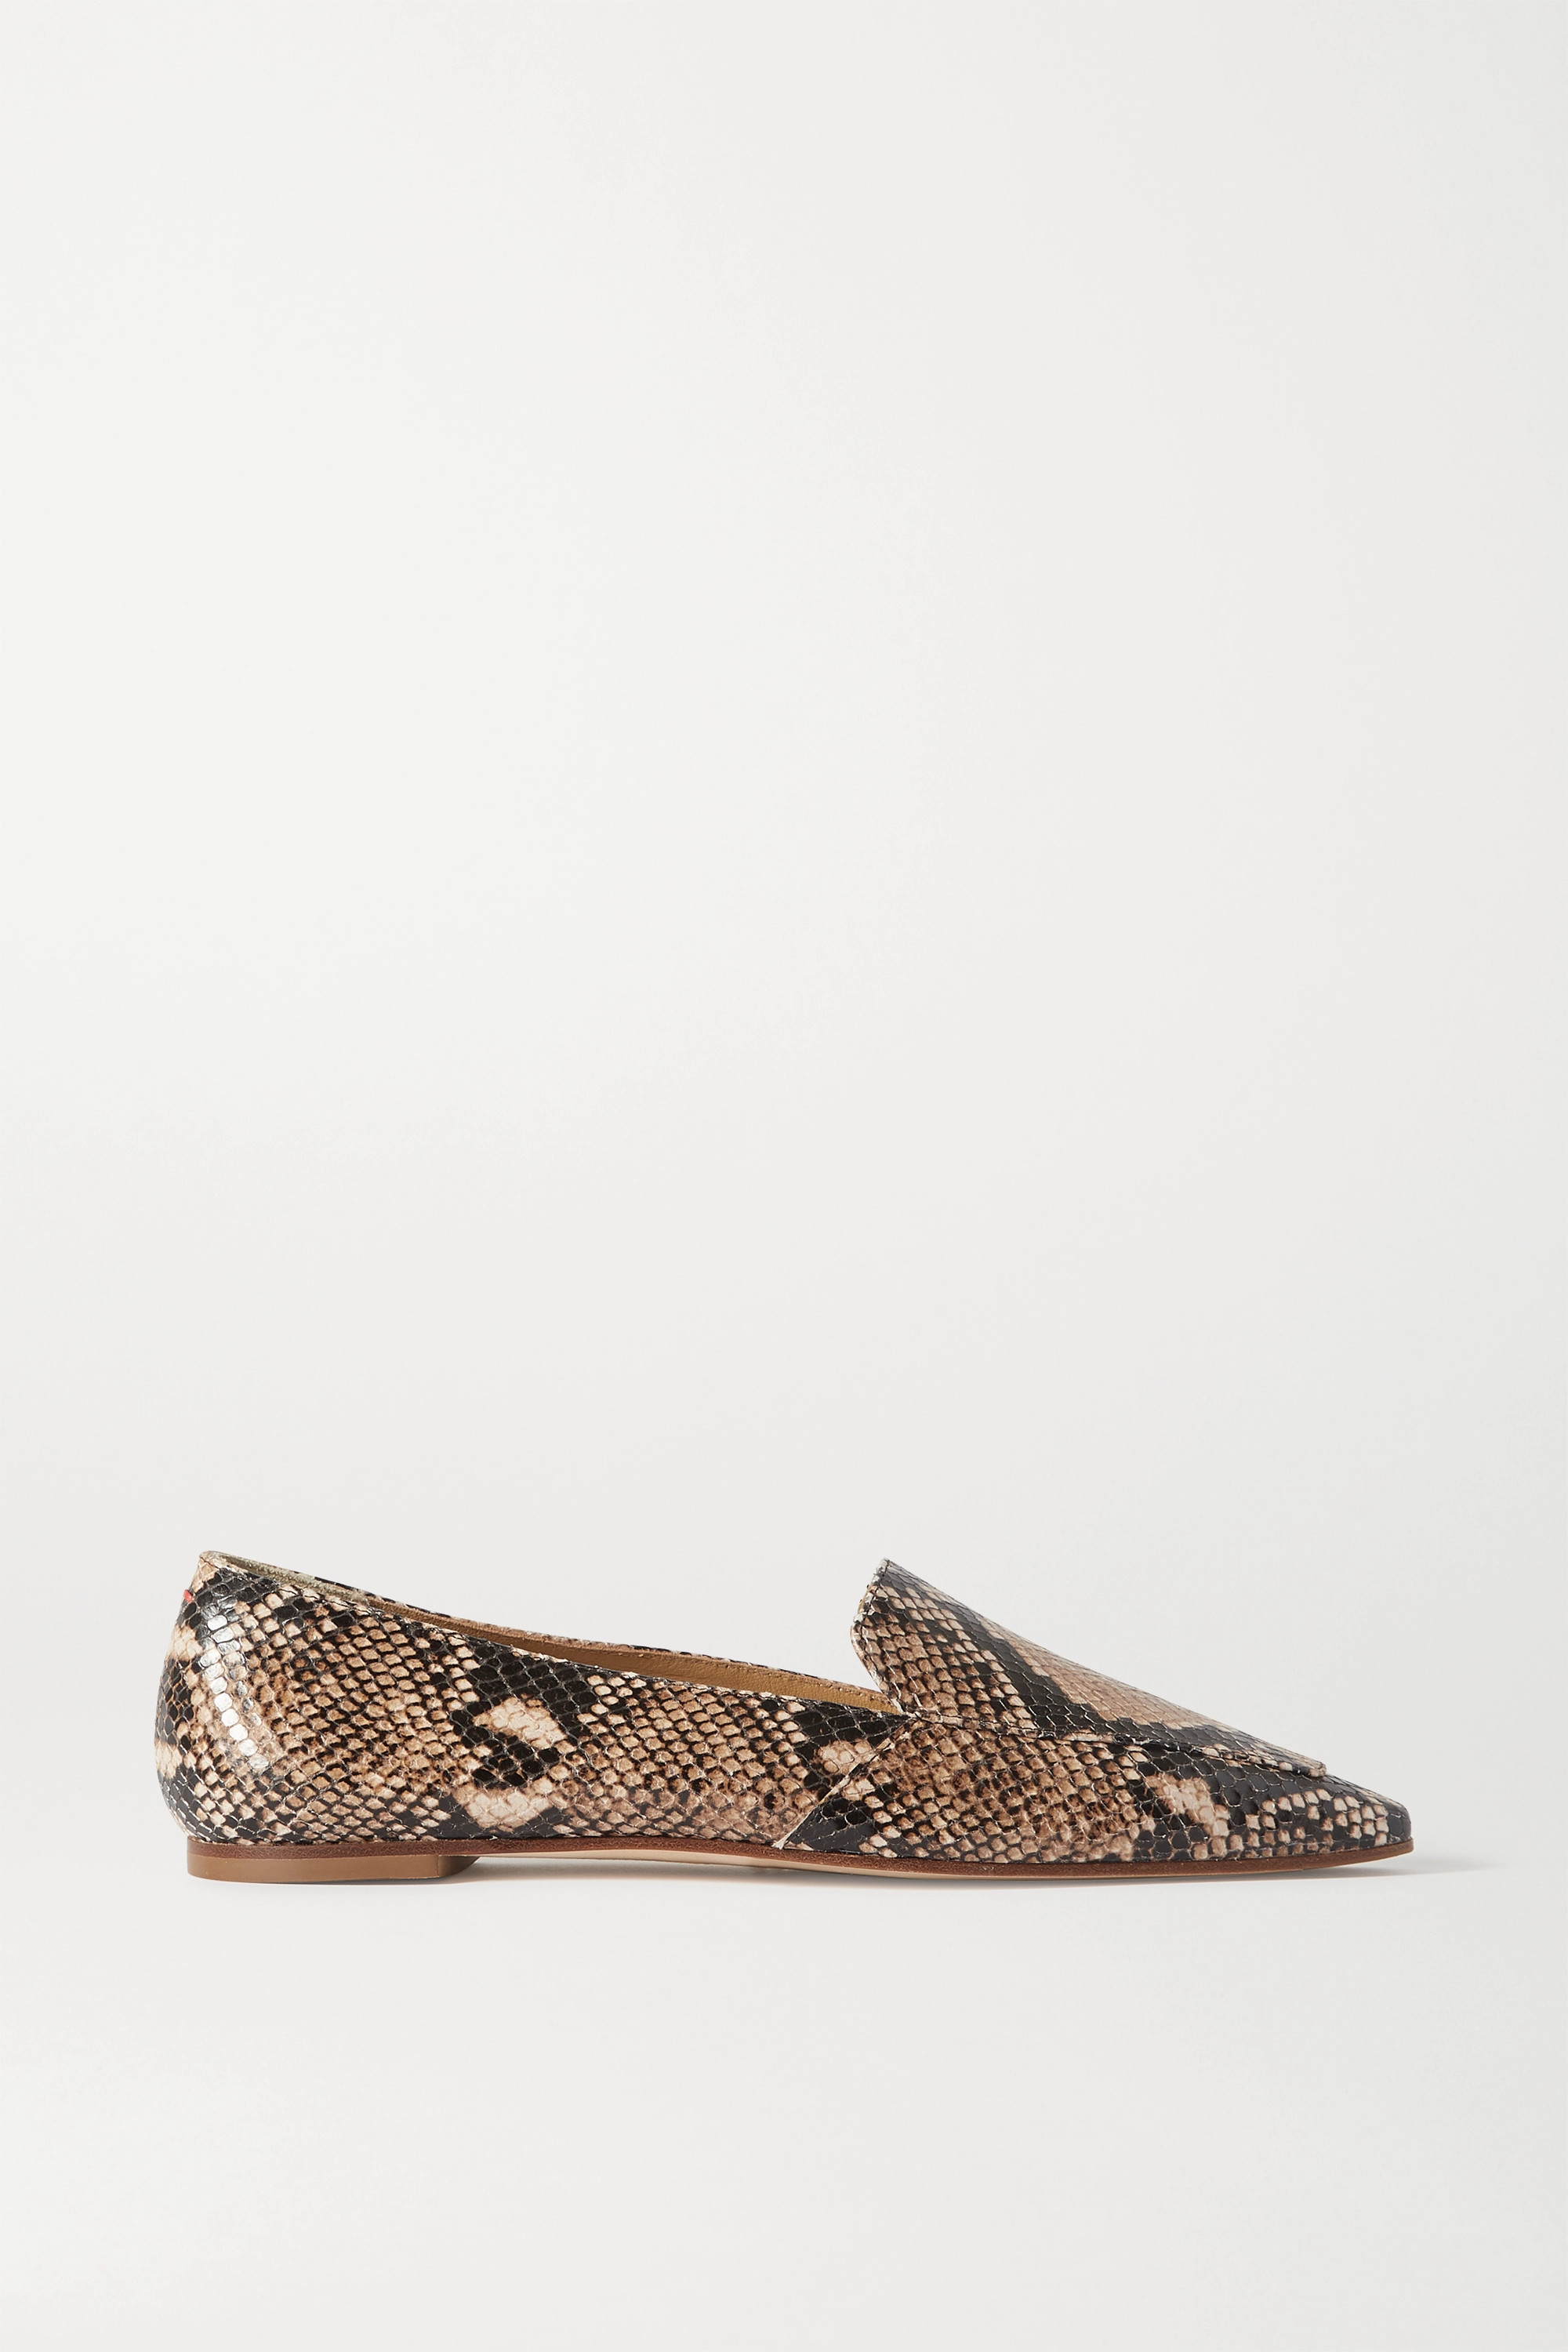 aeyde Aurora snake-effect leather loafers